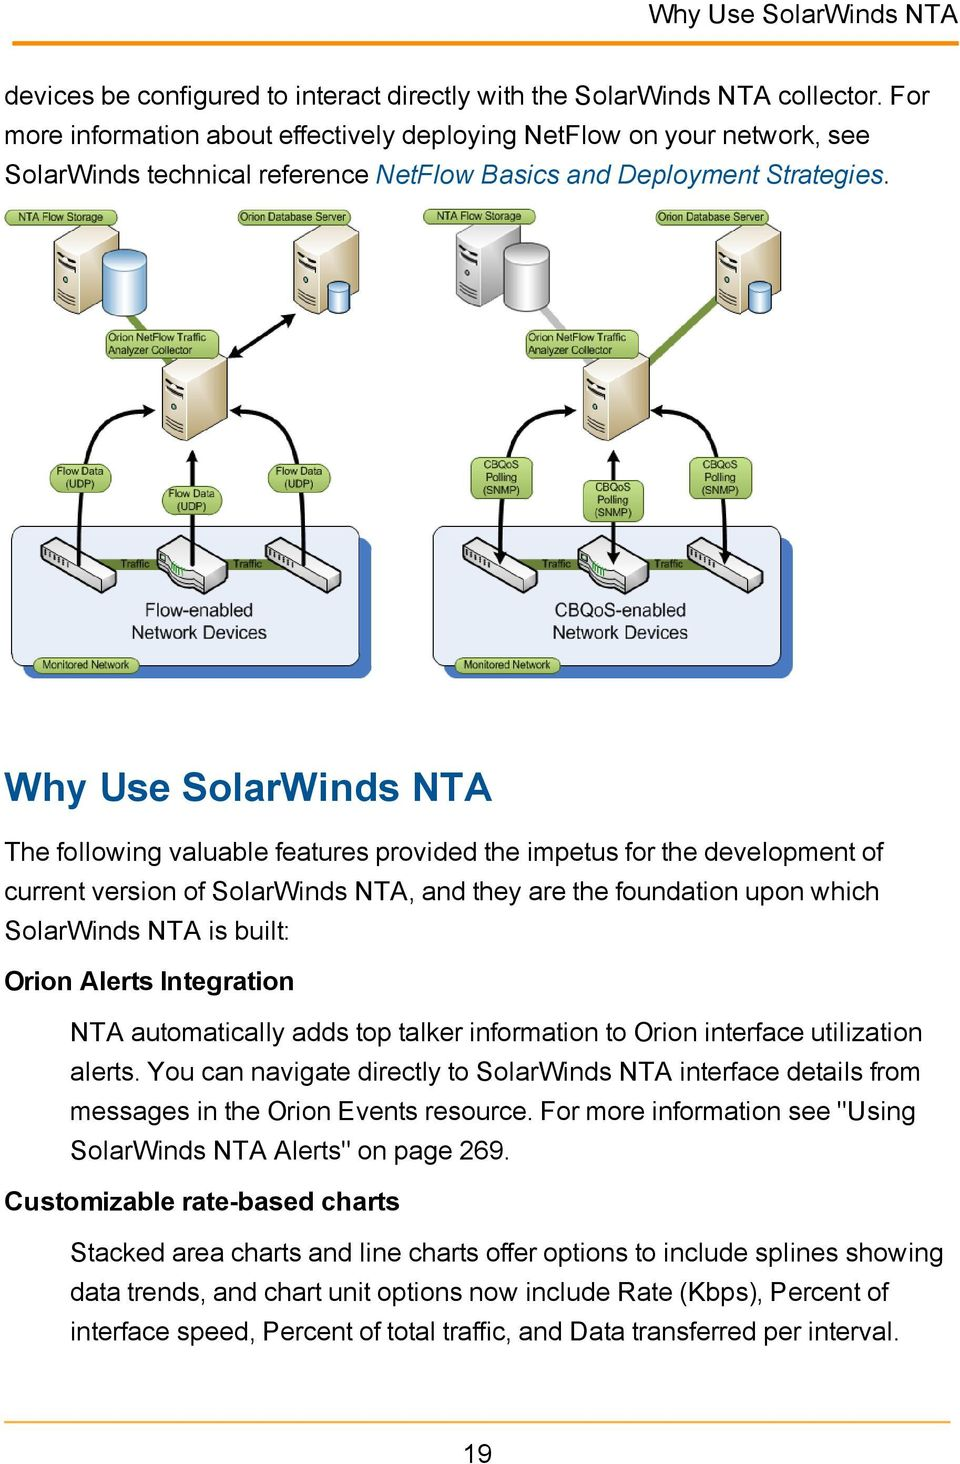 Why Use SolarWinds NTA The following valuable features provided the impetus for the development of current version of SolarWinds NTA, and they are the foundation upon which SolarWinds NTA is built: